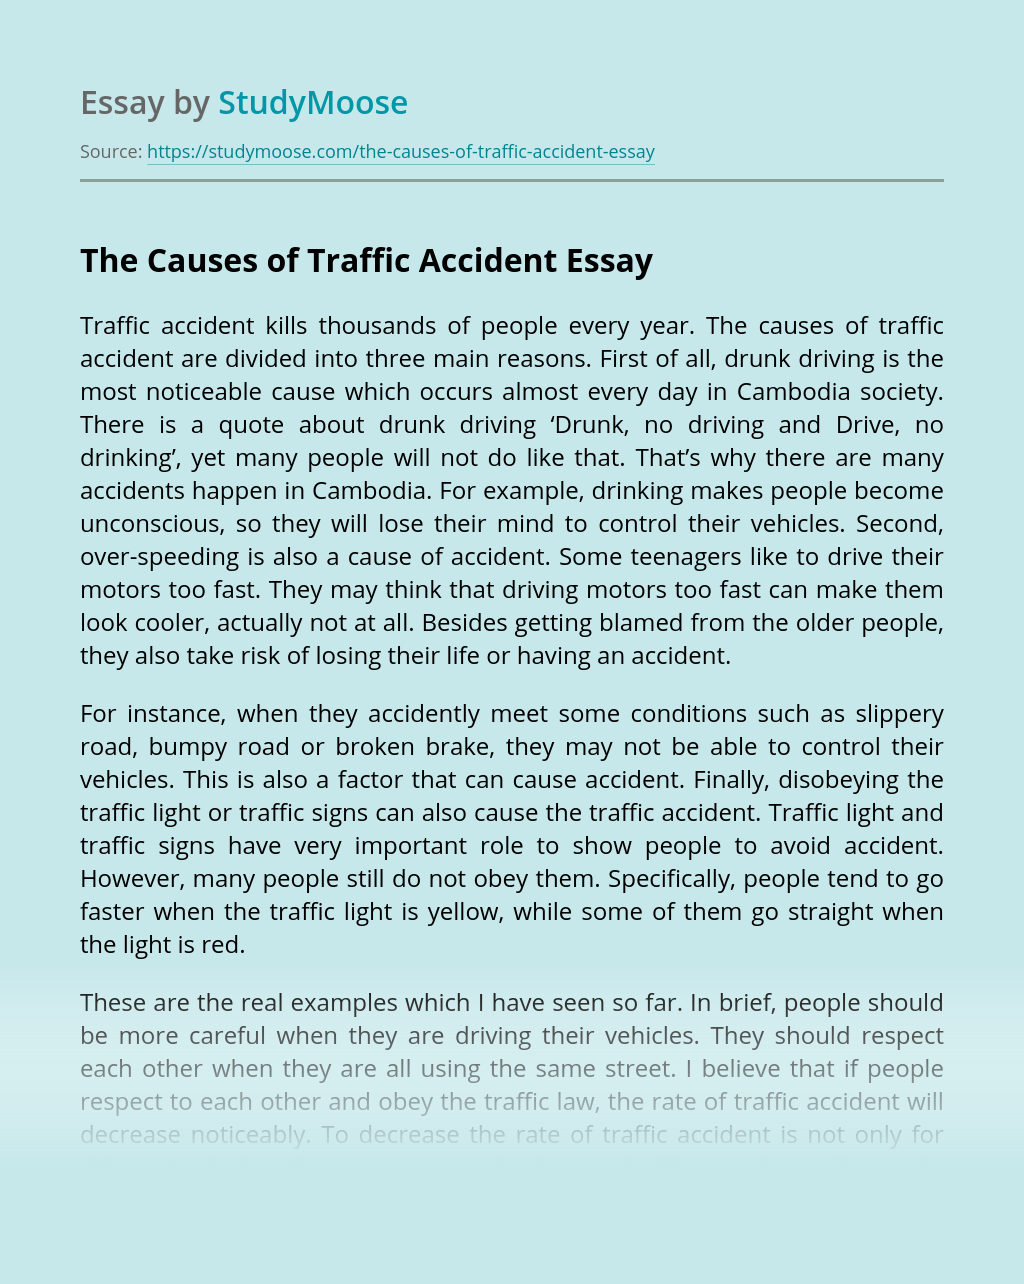 The Causes of Traffic Accident